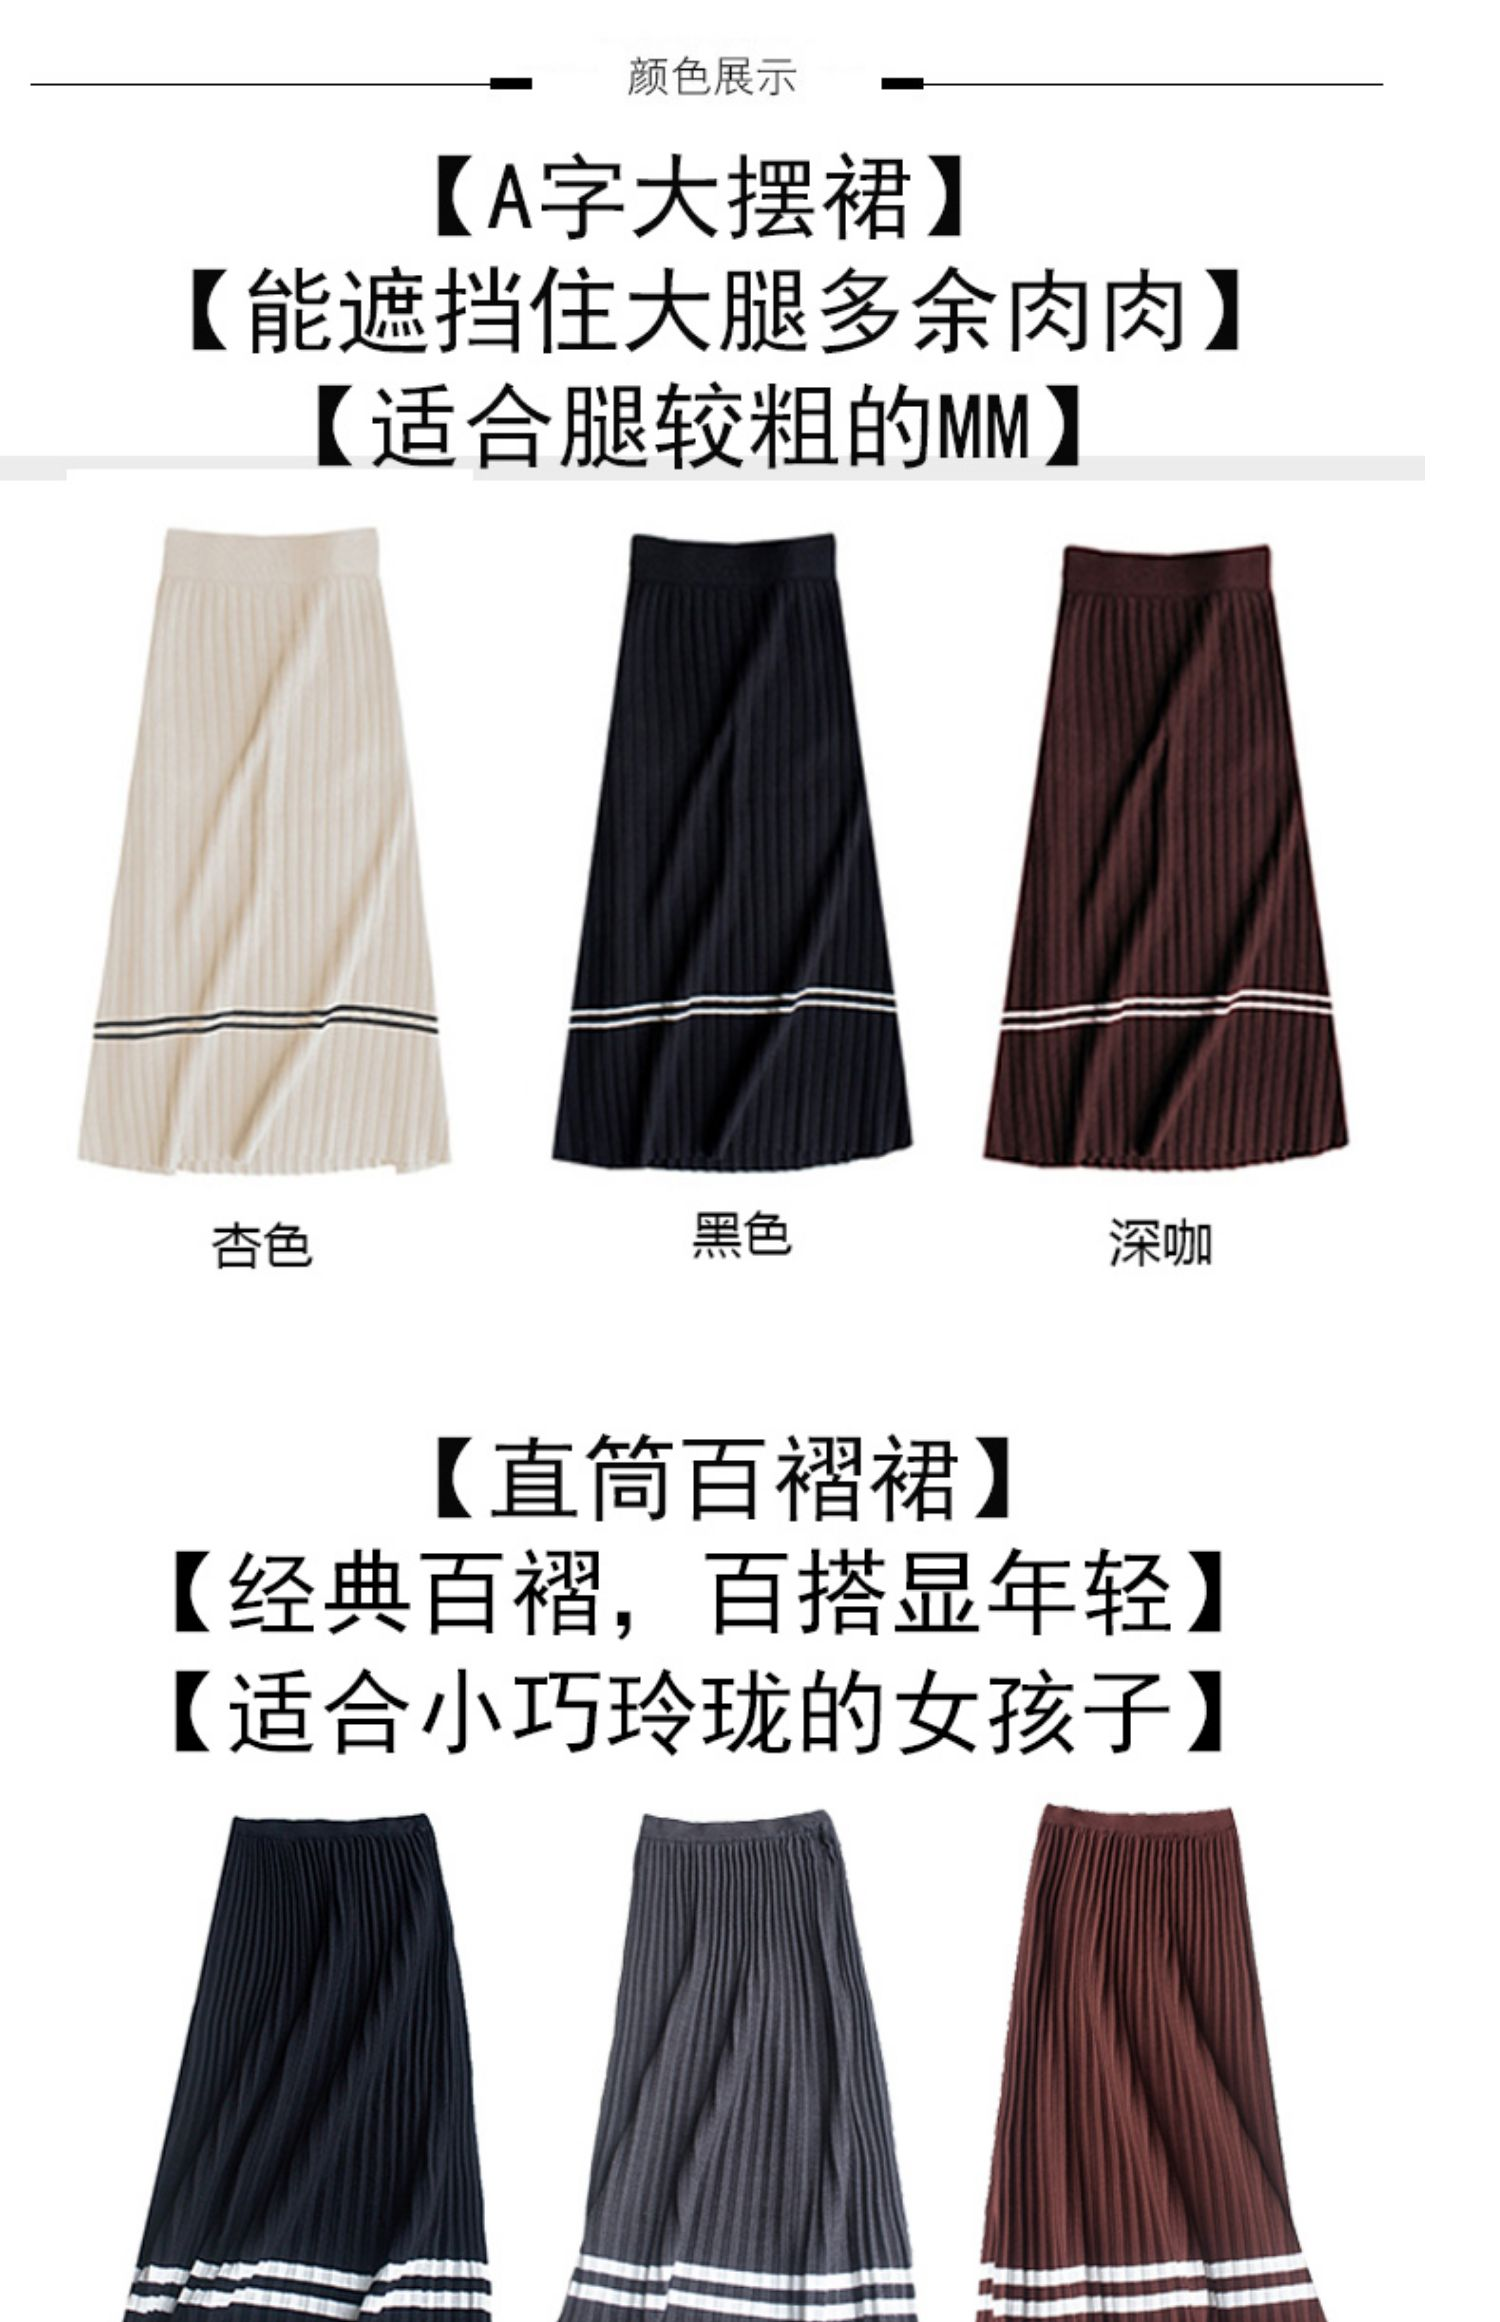 19 Time-limited Empire Skirt Saia Winter Of Tall Waist Knitted Skirts In The New Long Joker Their Children With A Sweater 7